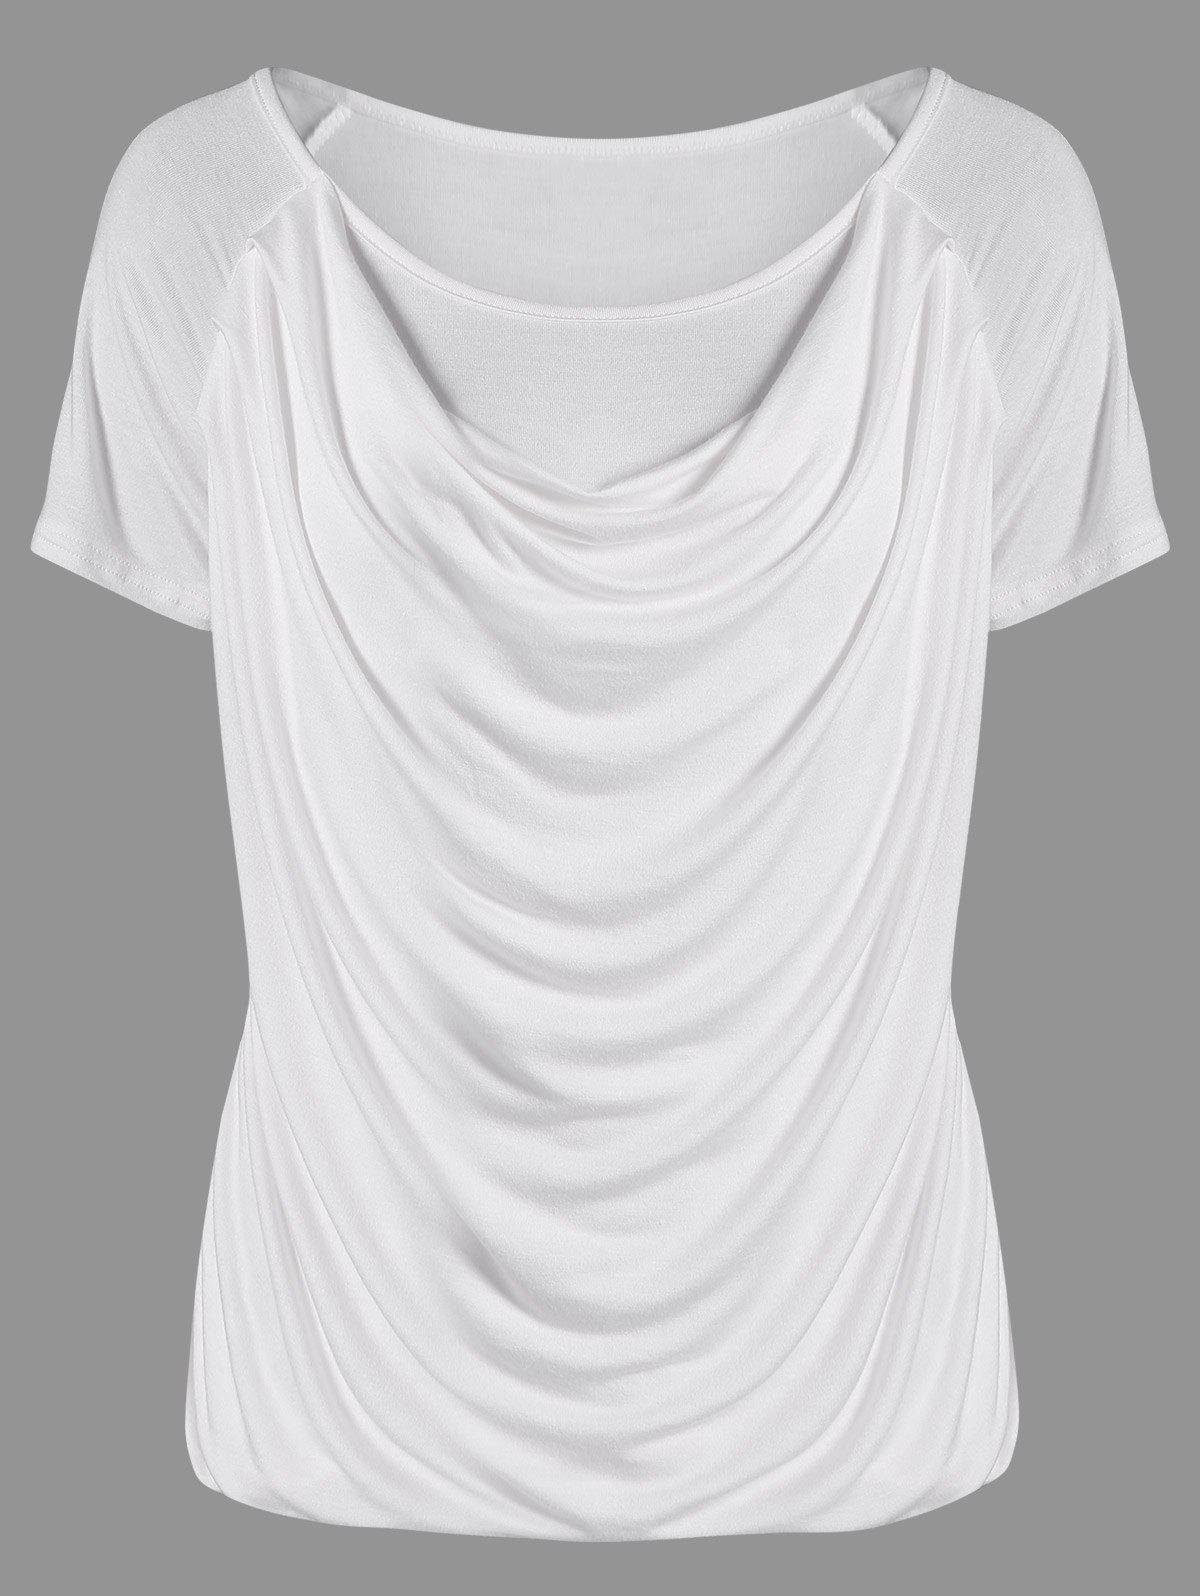 Ruched Plain Ruffled T-Shirt от Rosegal.com INT